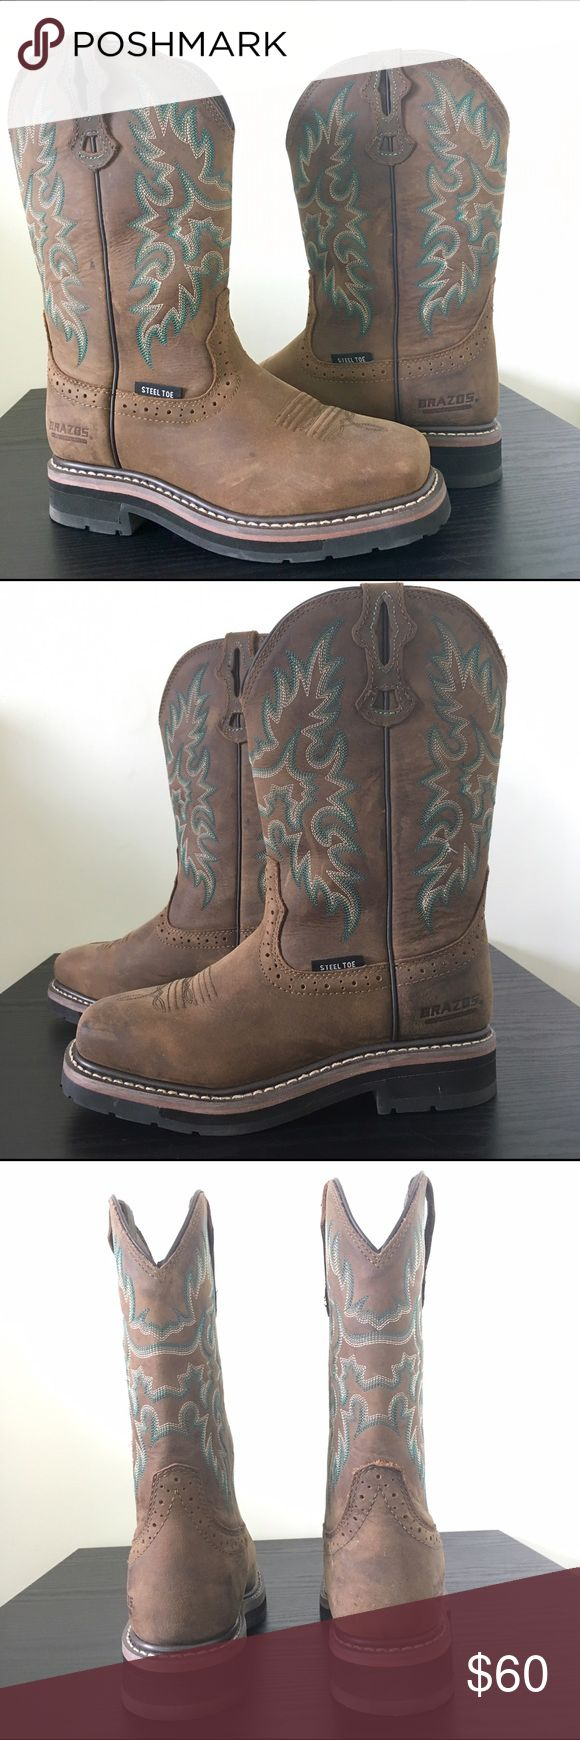 Brazos steel toe cowboy boots brown Steel toe cowboy boots by Brazos. Size 6. Protective and safe but also fashionable! Only wore these once! Brazos Shoes